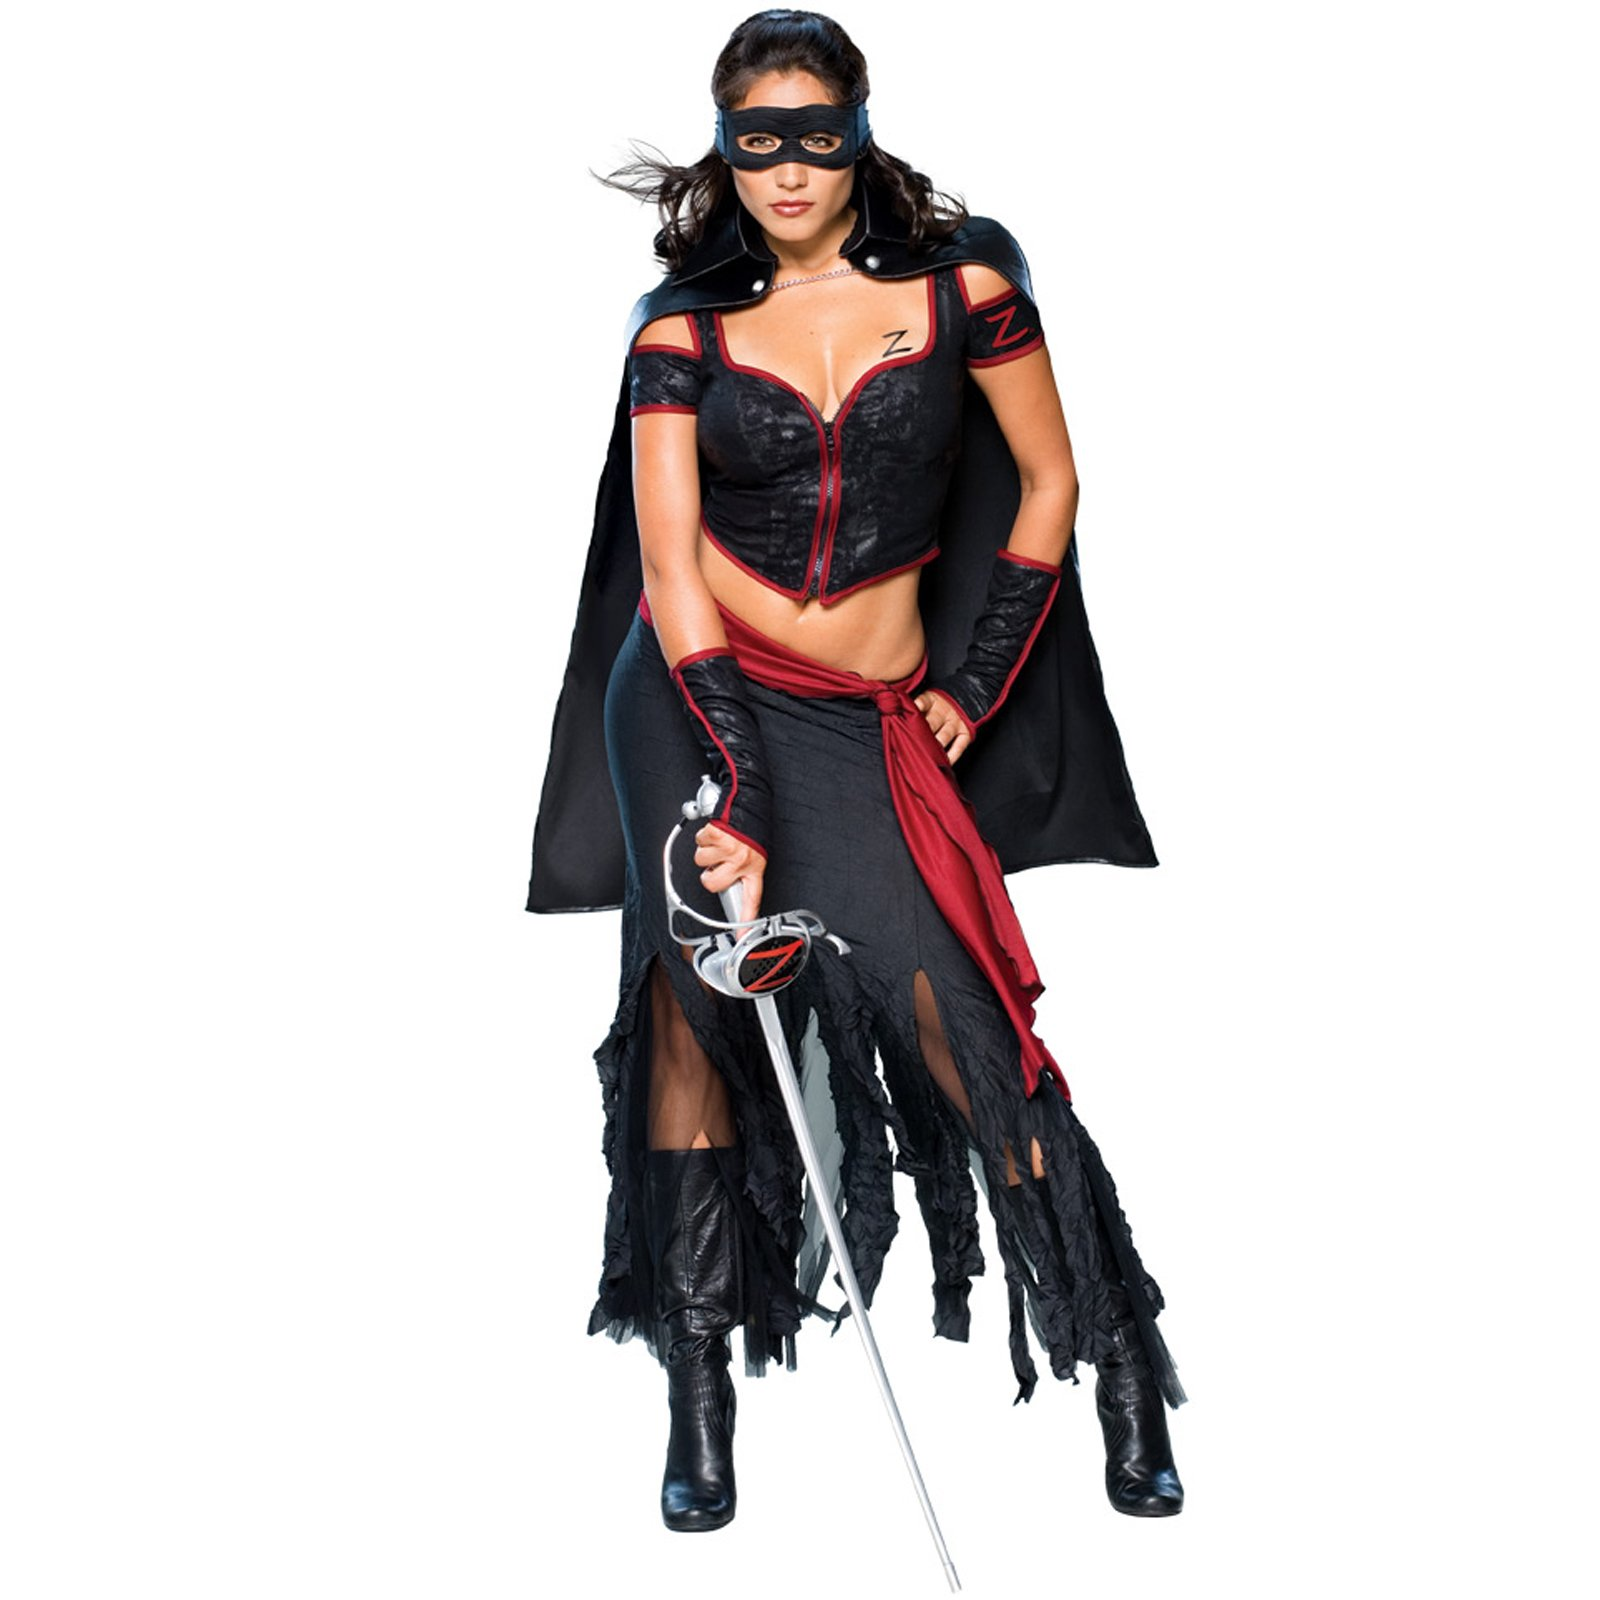 C719 Licensed Lady Zorro Mask Movie Spanish Hero Halloween